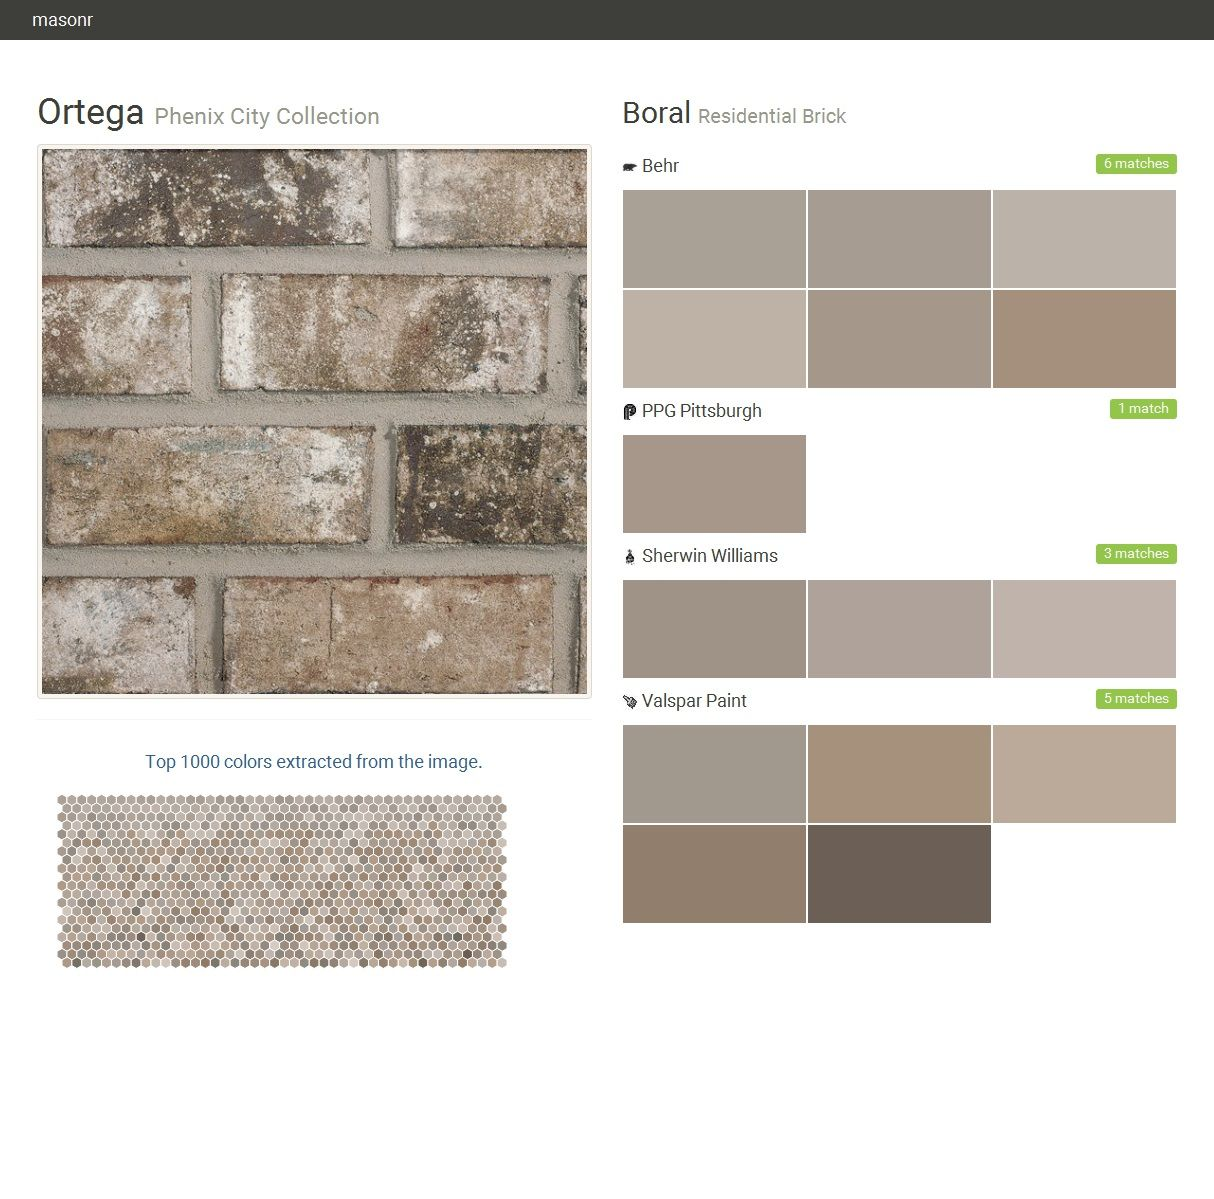 Ortega phenix city collection residential brick boral behr ppg paints sherwin williams - Removing paint from brick exterior collection ...